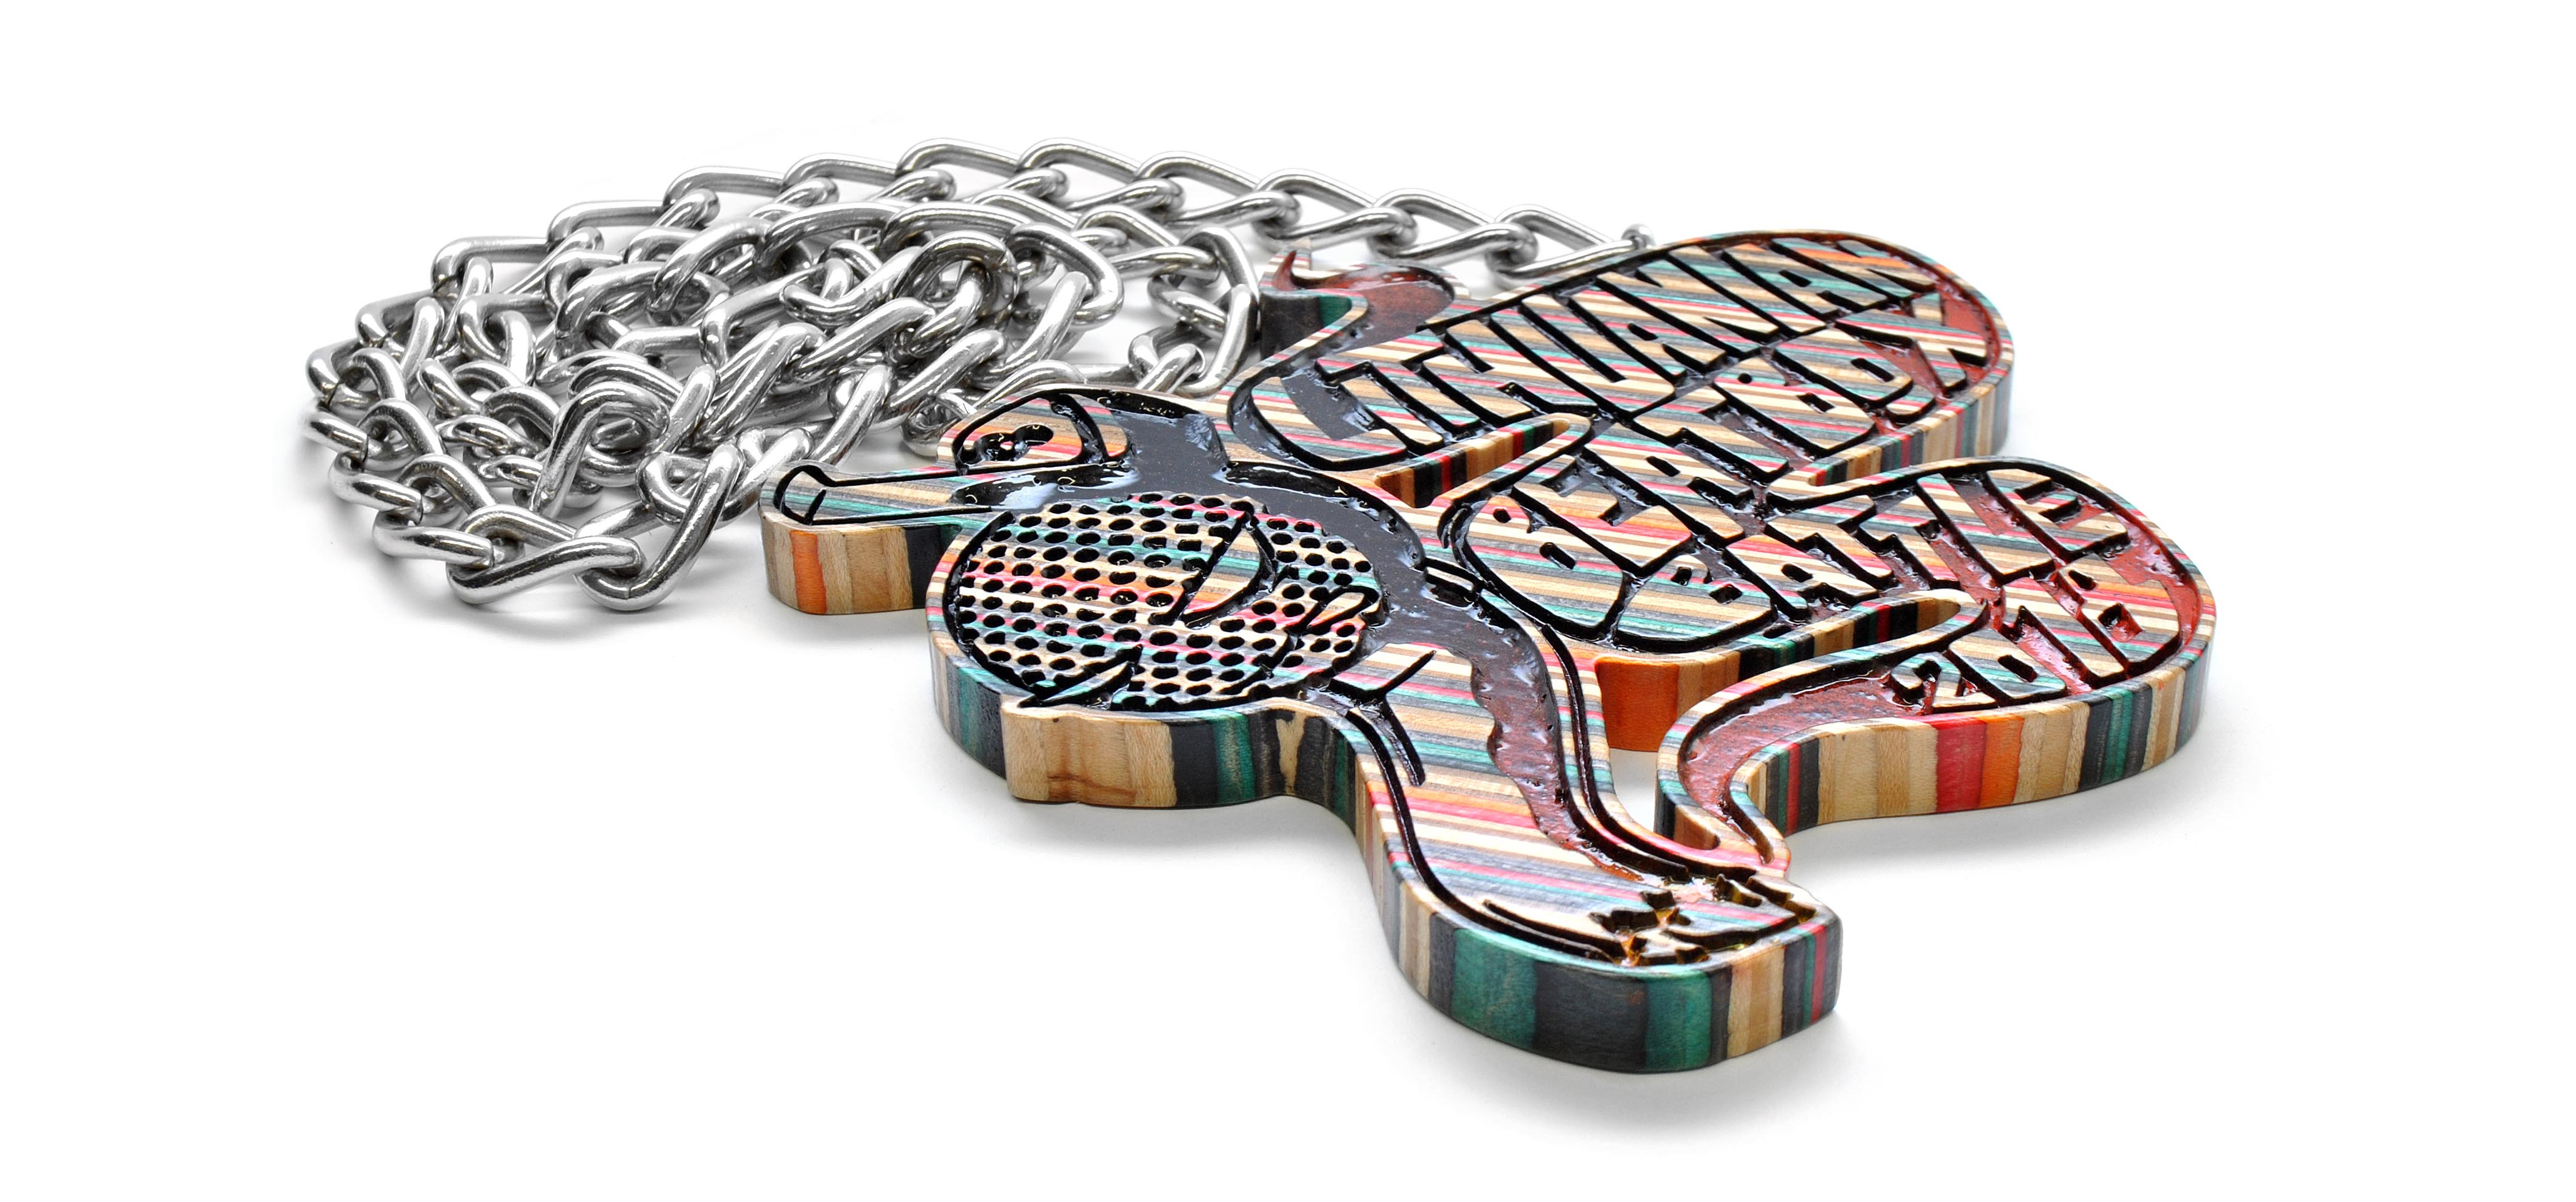 beatbox chain trophy